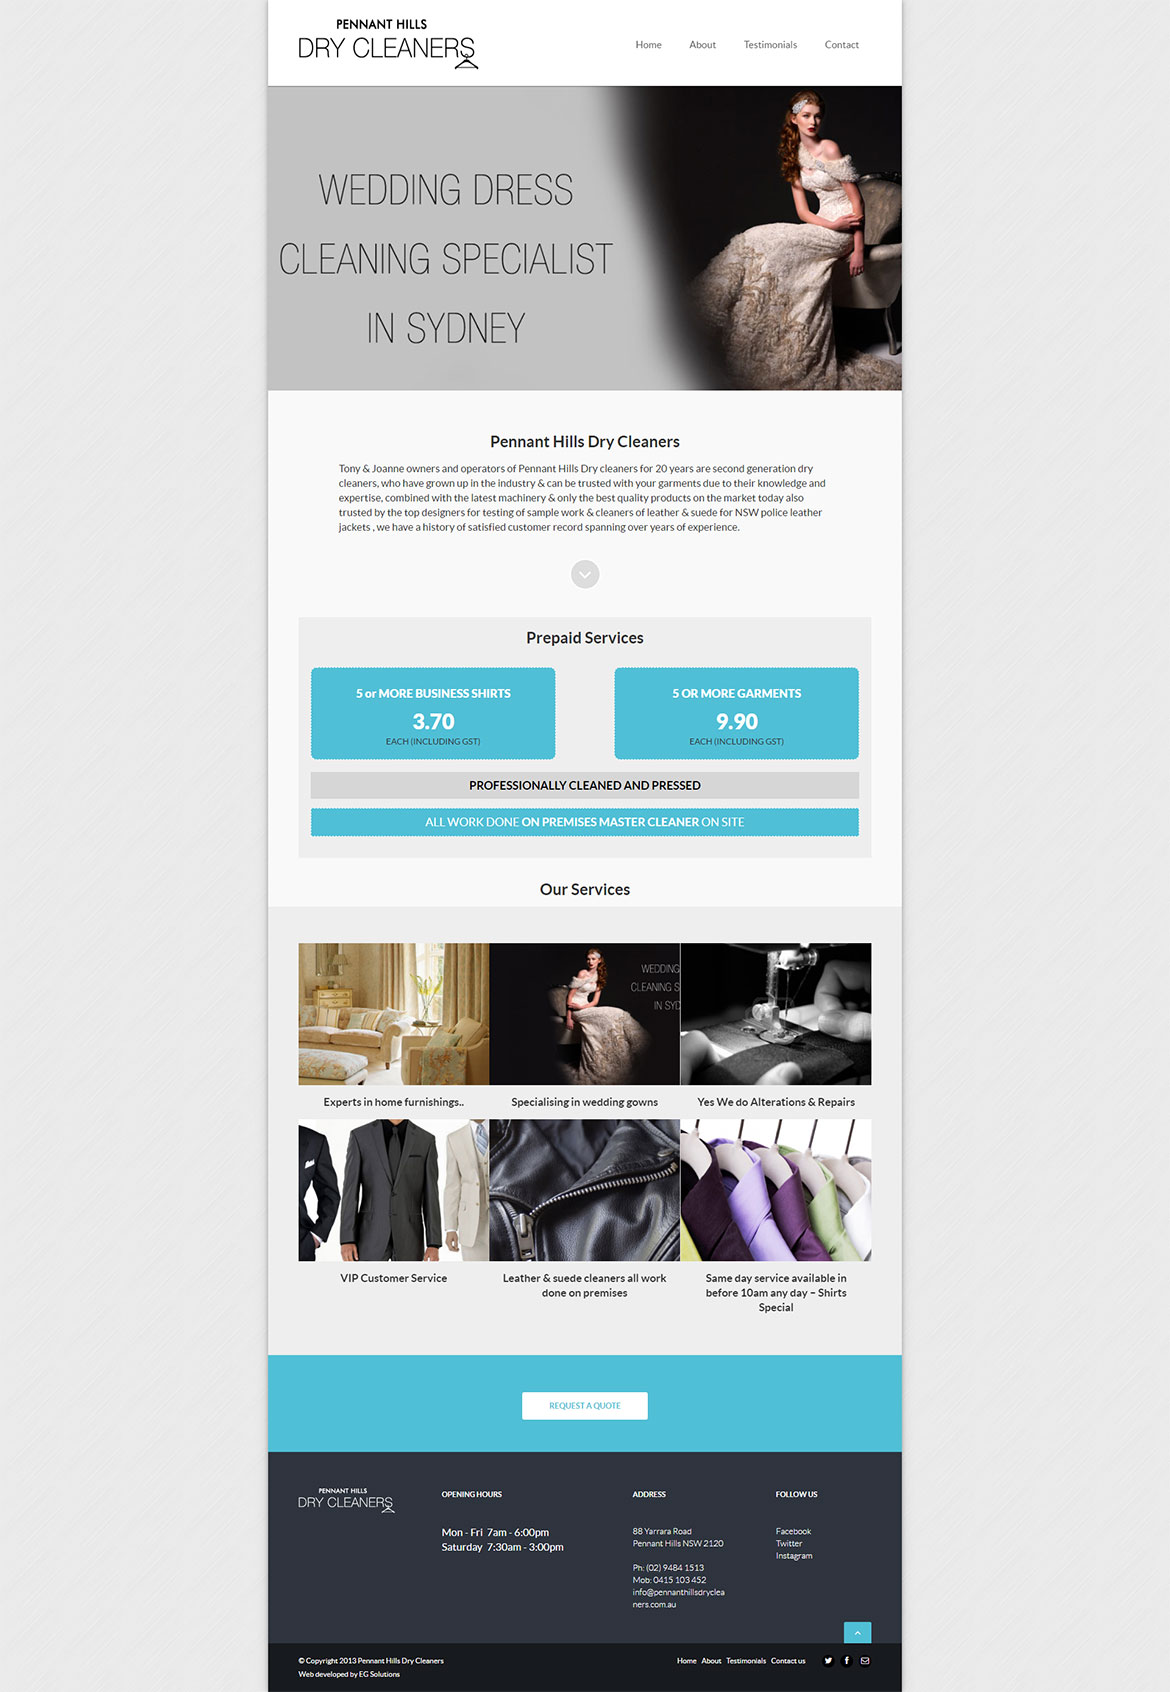 Pennant Hills Dry Cleaners Home page